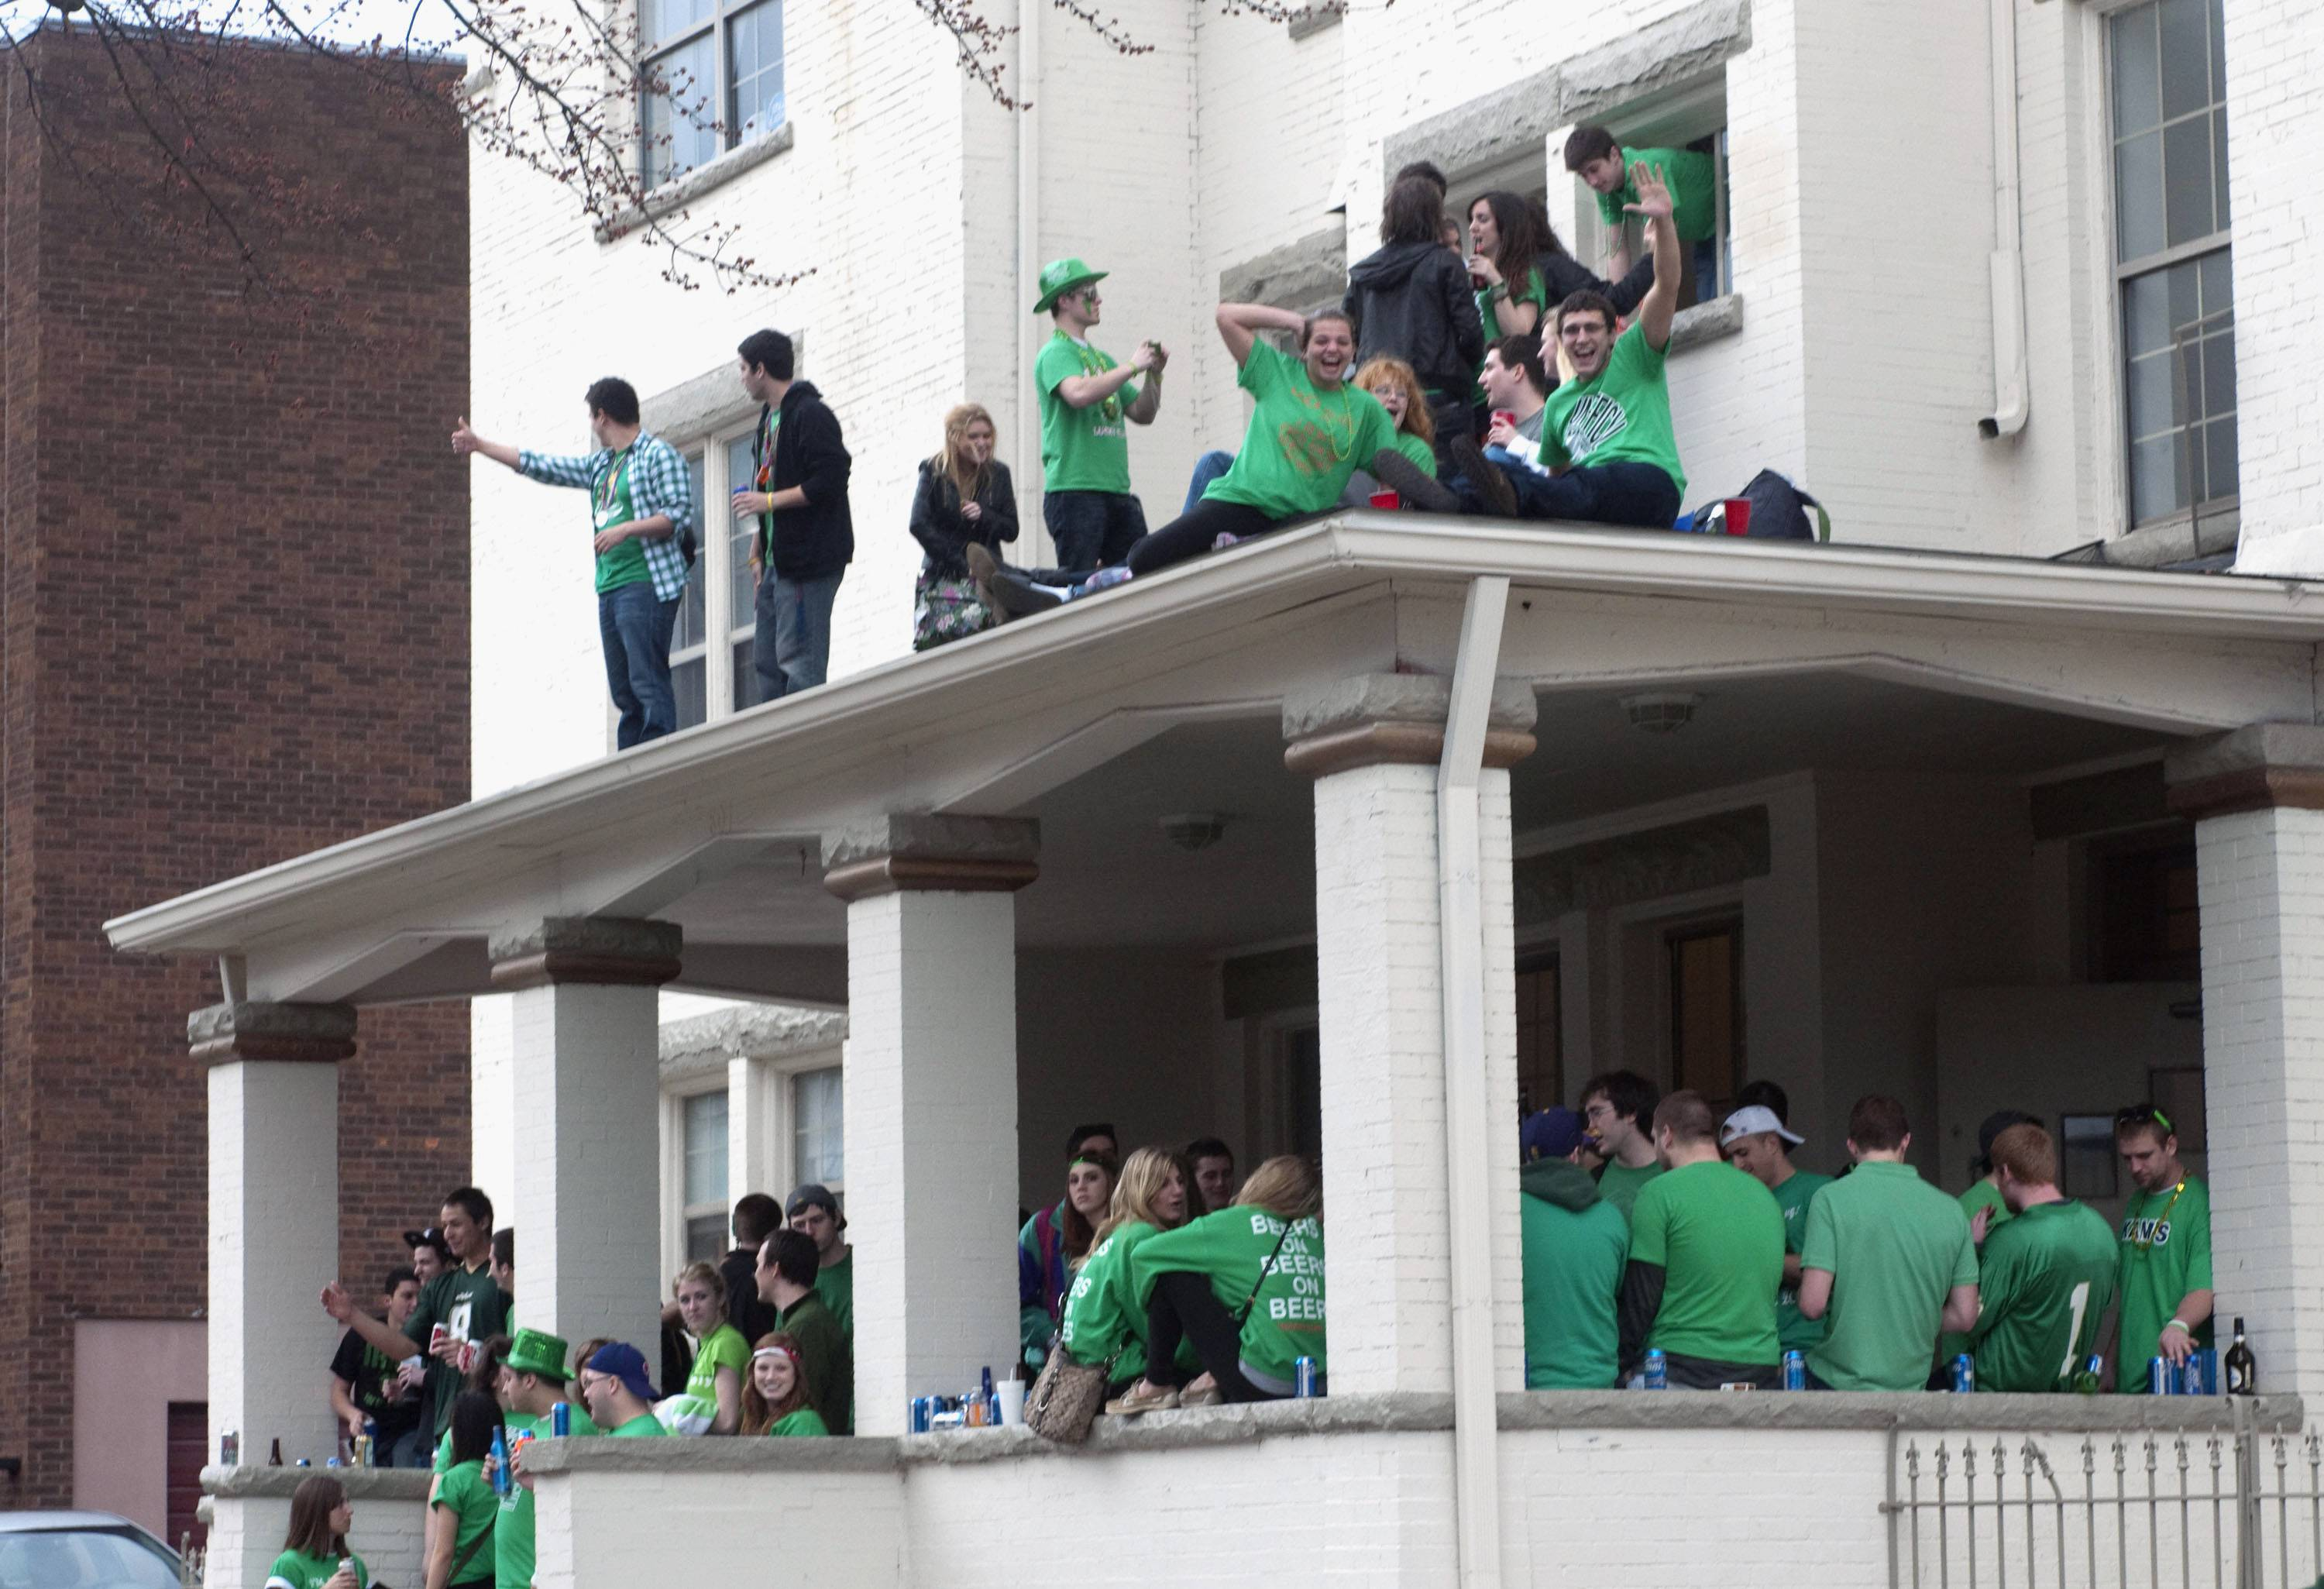 Champaign police prepare for St. Patrick's Day party